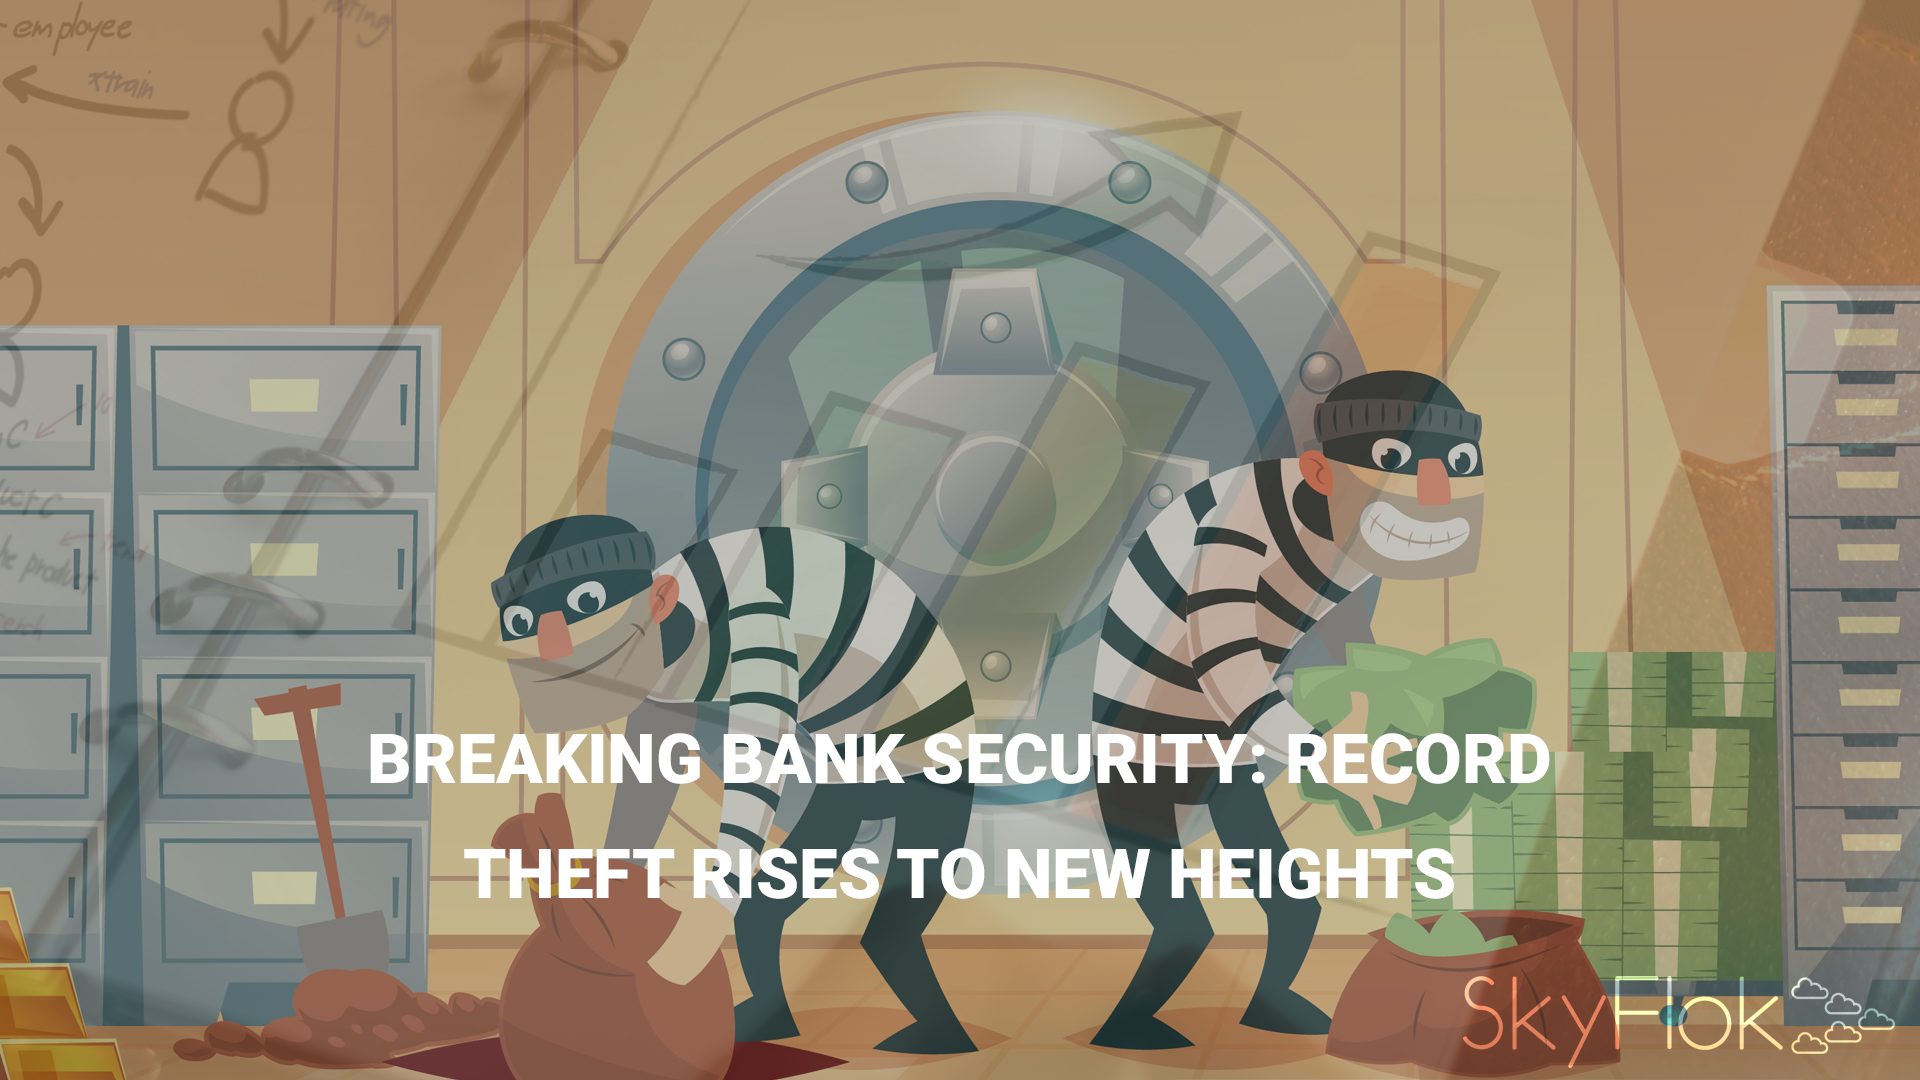 Breaking bank security: Record theft rises to new heights